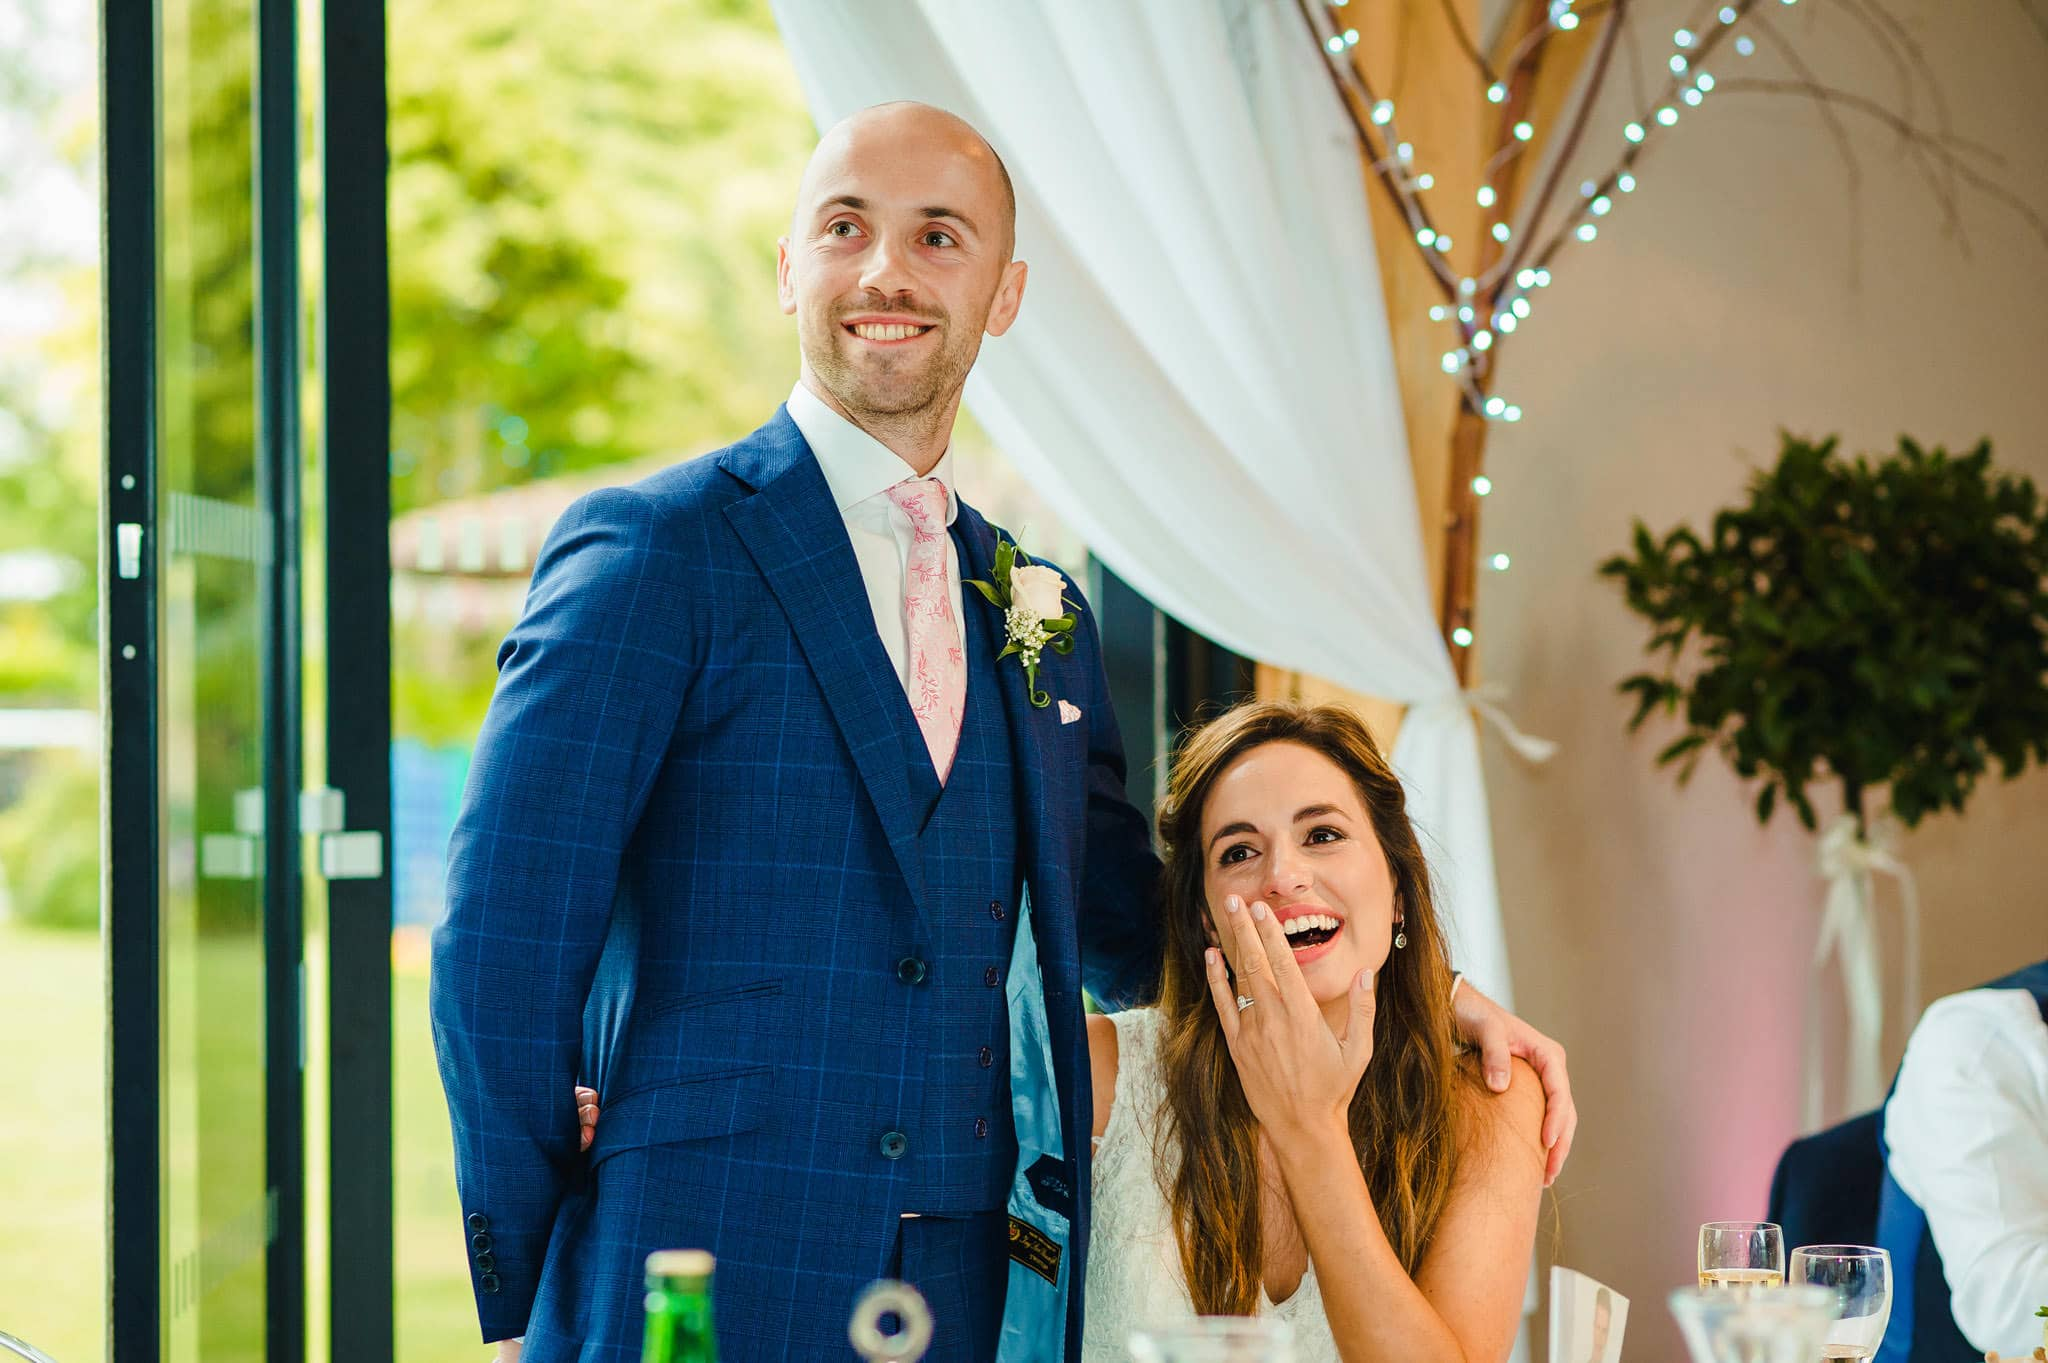 Wedding at Redhouse Barn in Stoke Prior, Worcestershire 150